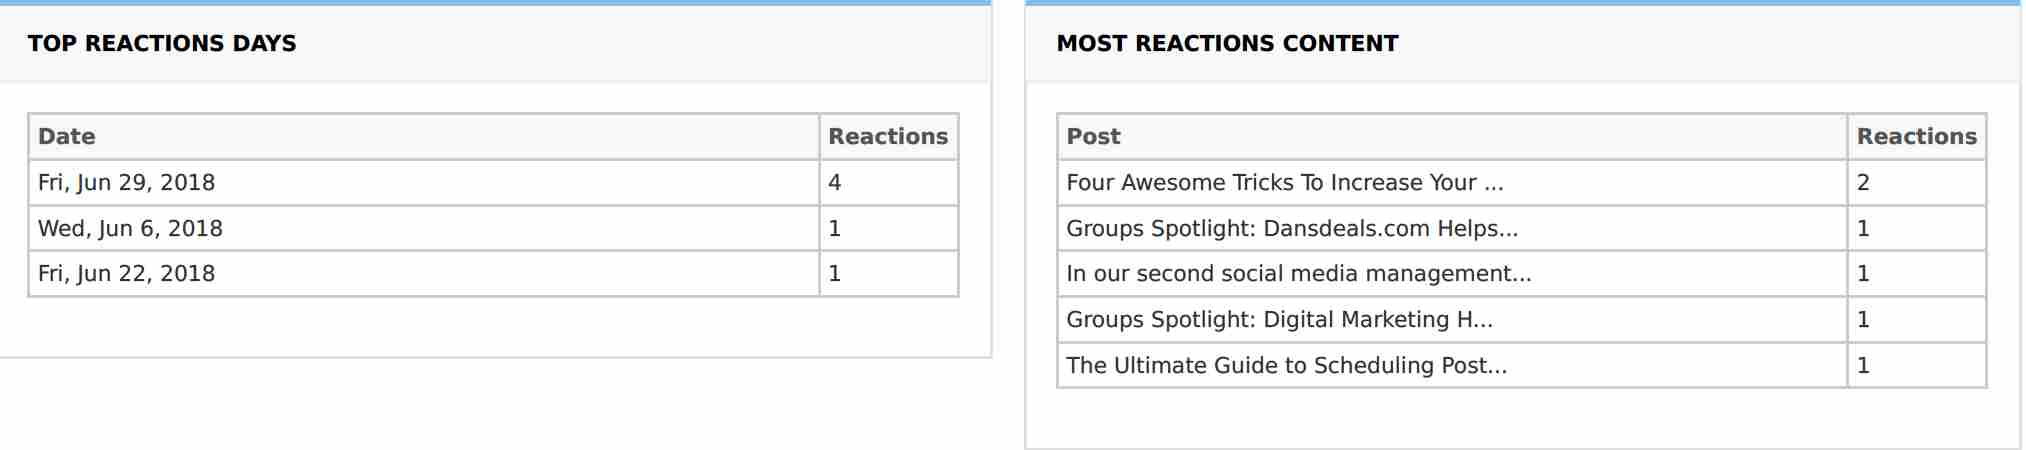 Distribution of Reactions Received on Posts